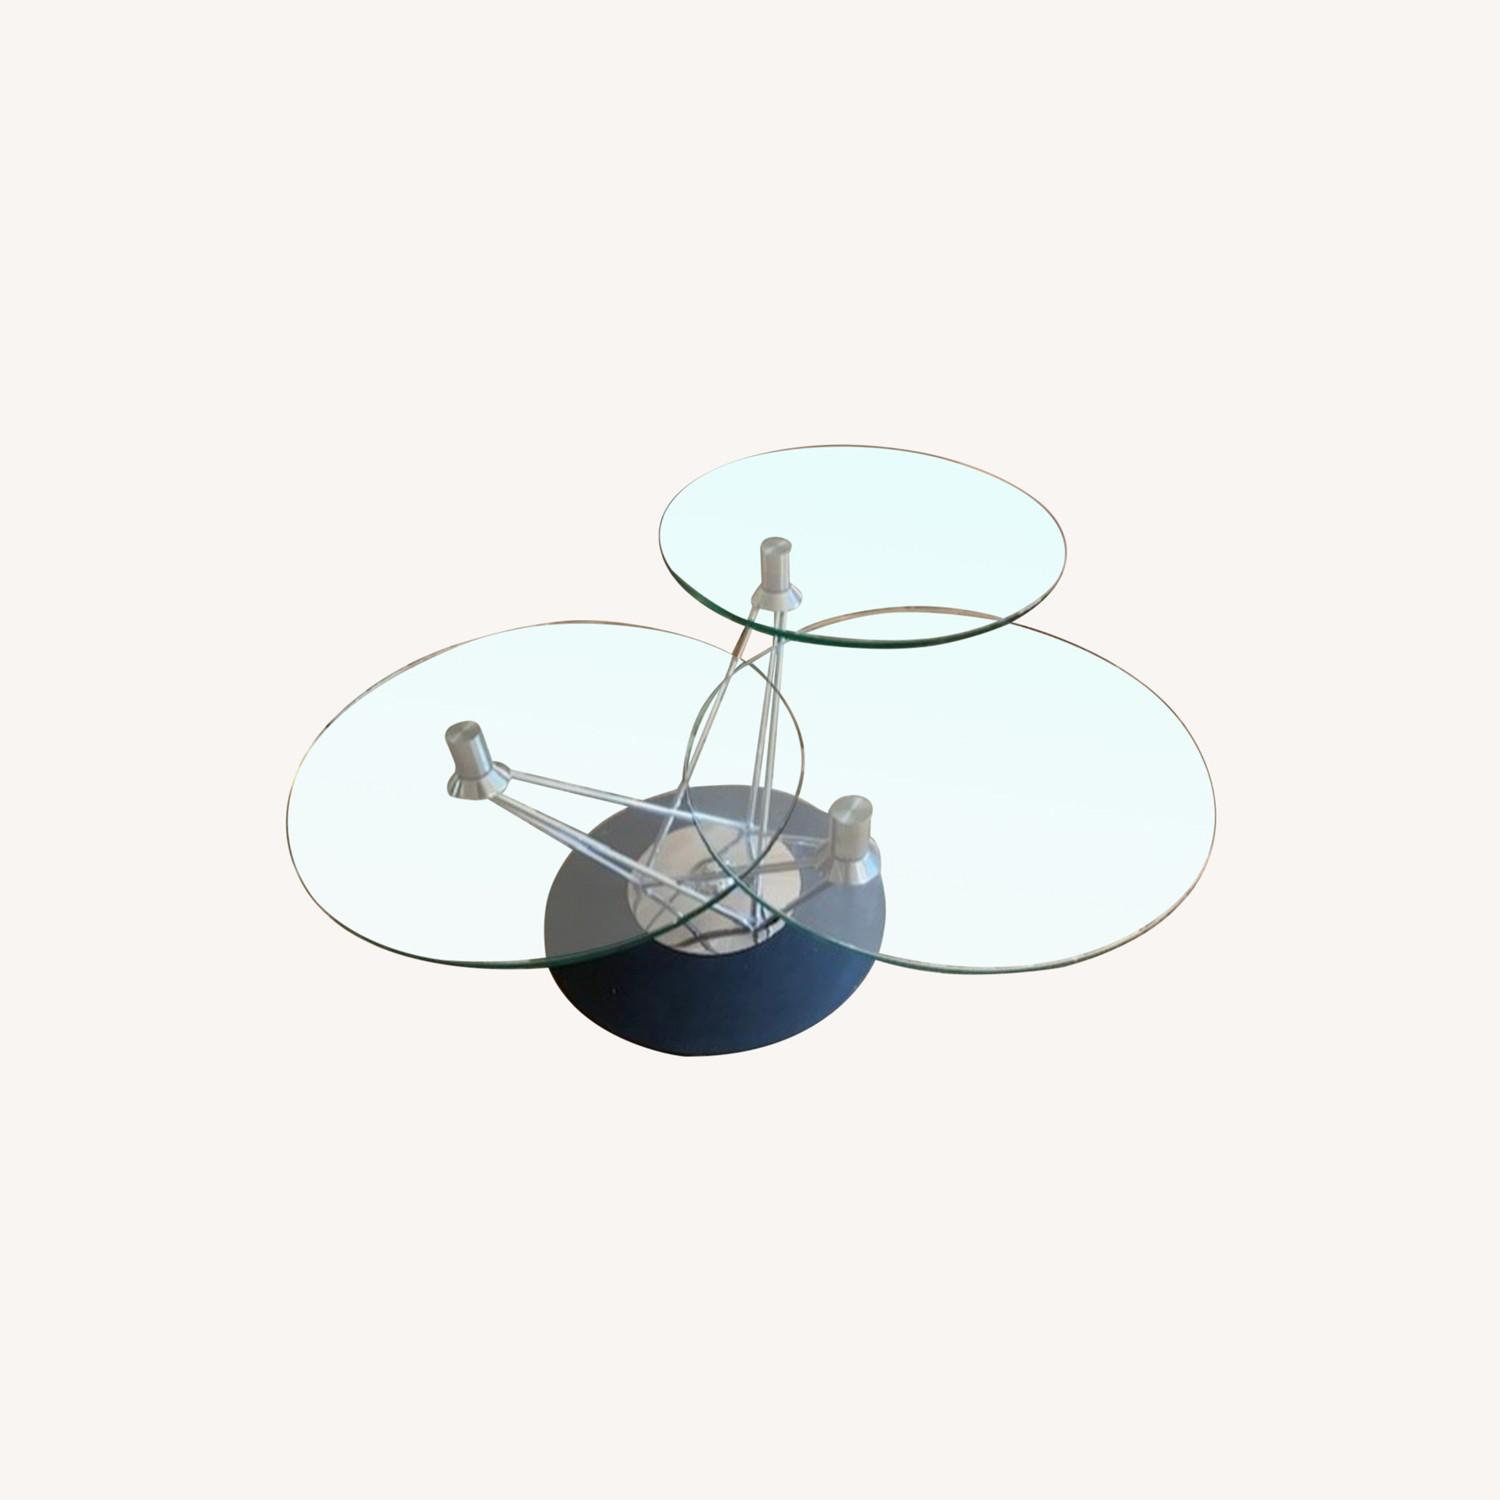 Steuben Glass Tempered Designer Collection Coffee Table - image-0